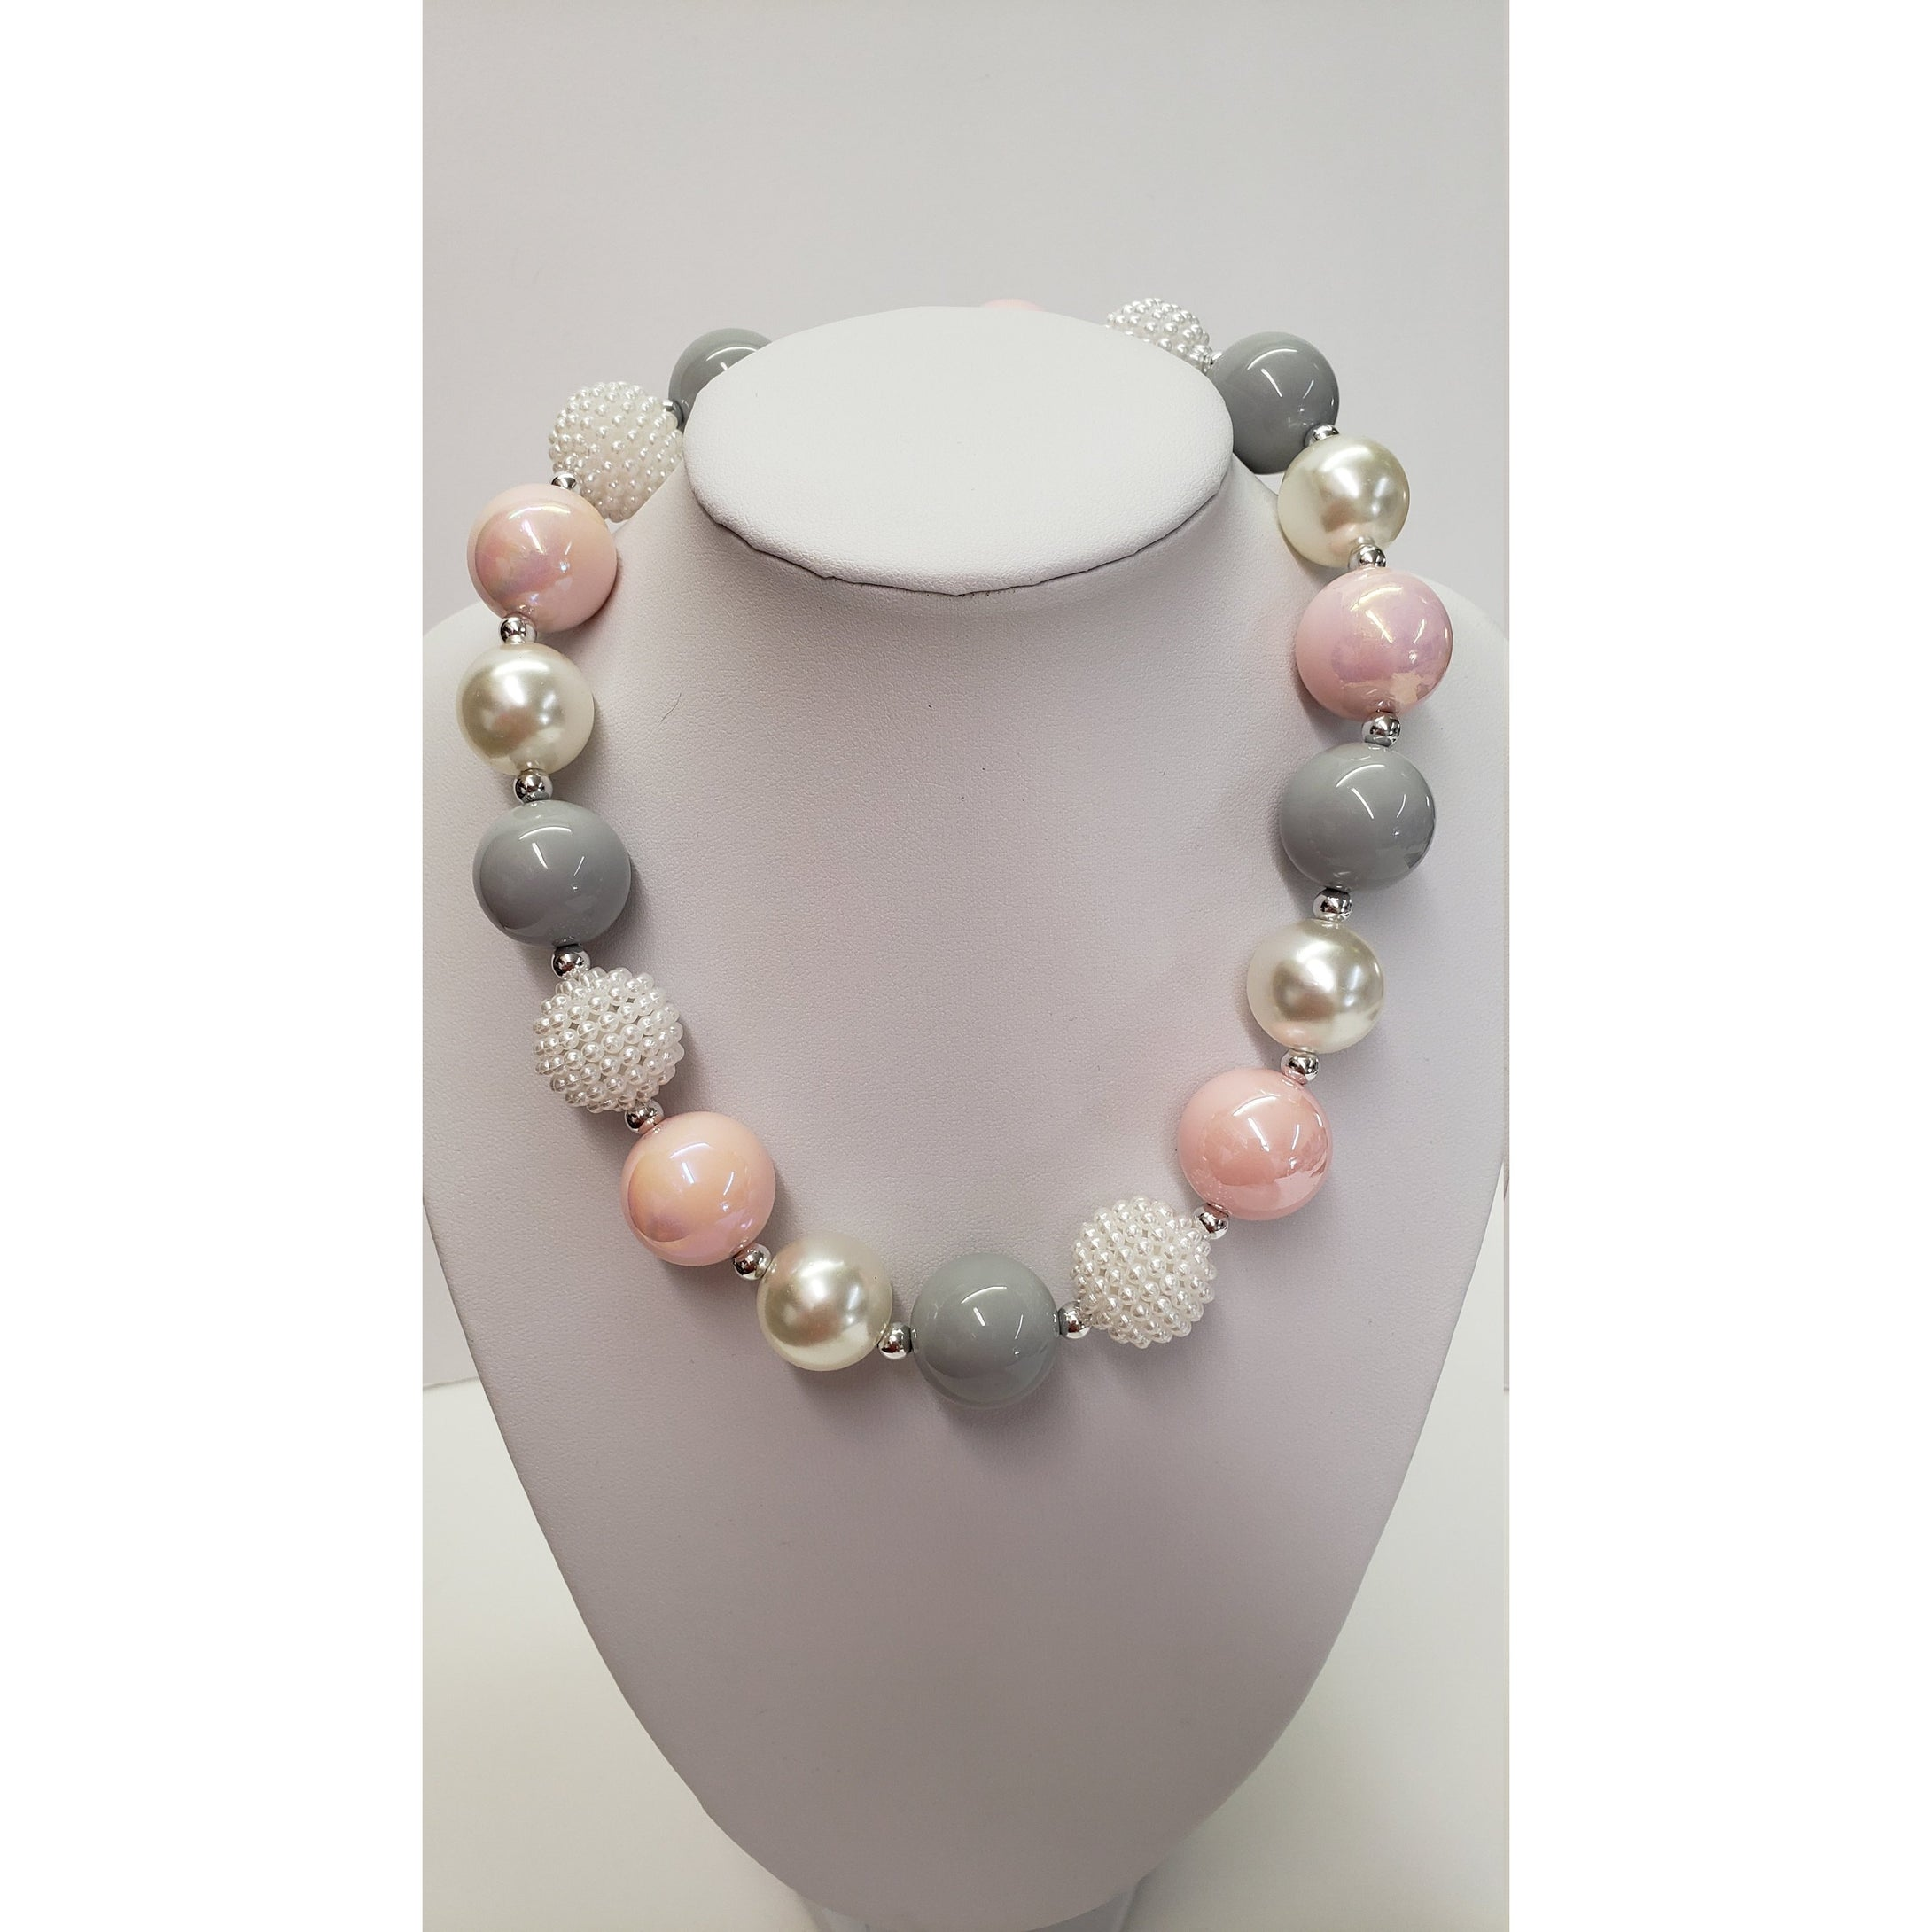 Pink- Gray - White Pearls BUBBLE GUM NECKLACE - Chunky Bubble Gum Necklace  - Girls necklace - Toddler bubble gum necklace - Pink- Gray - White Pears Elastic necklace